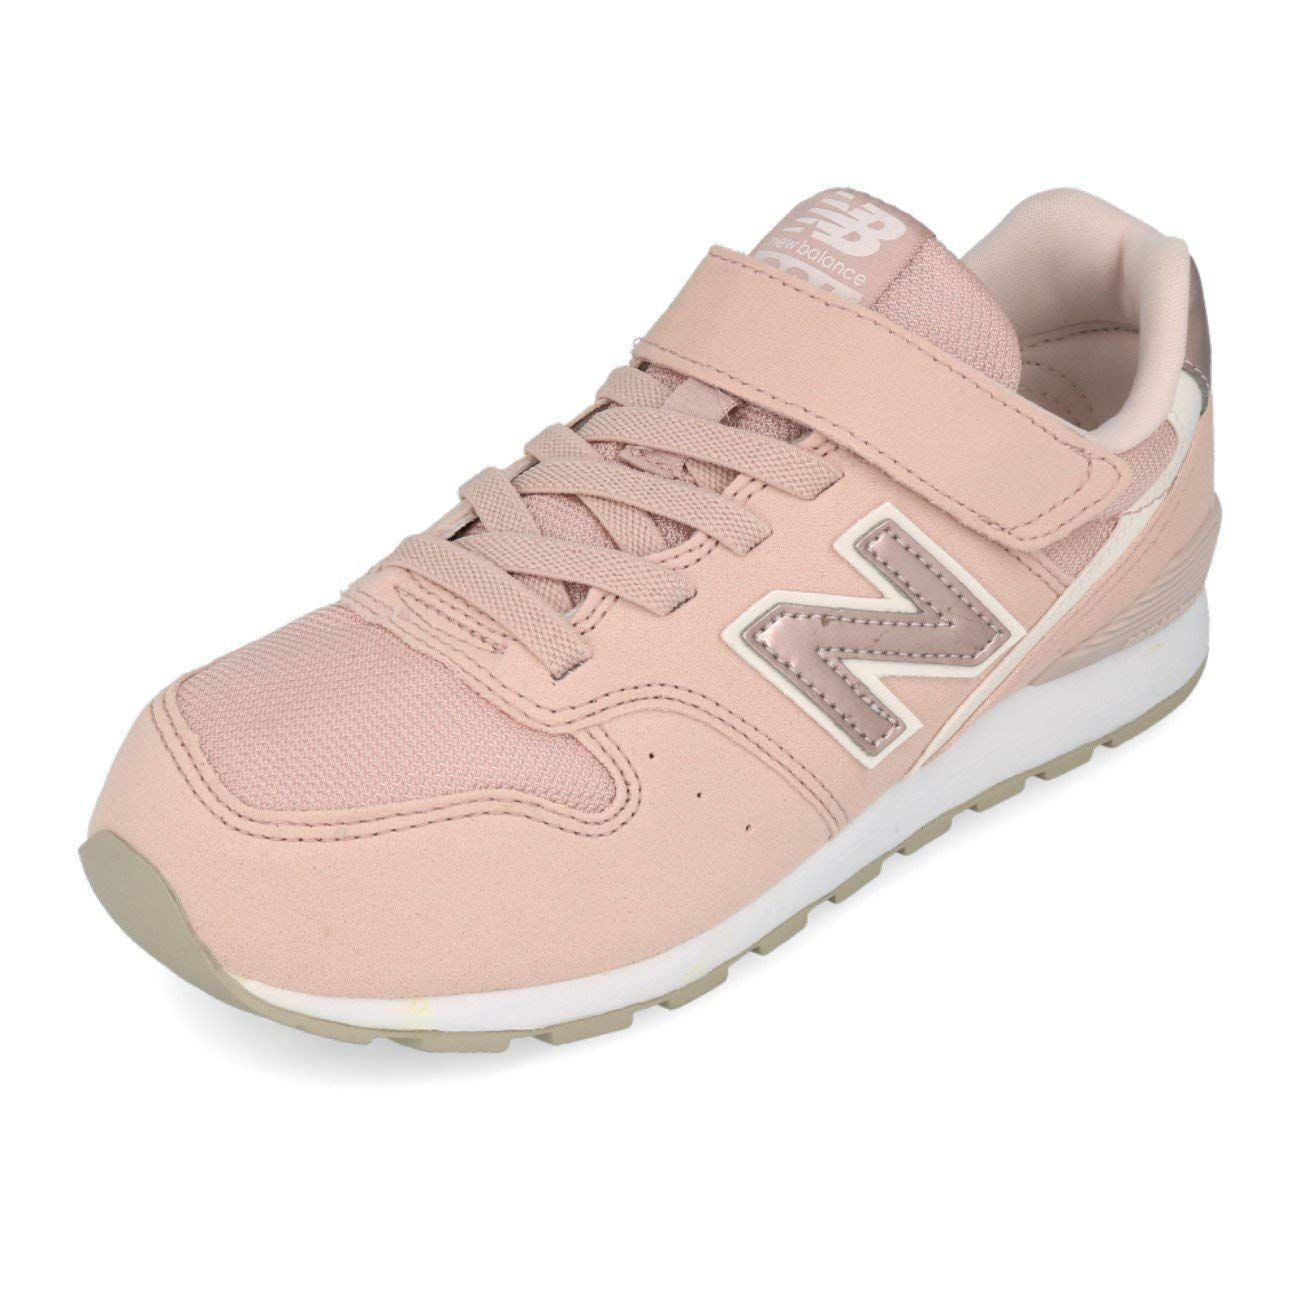 New Balance YV 996 PPK Kinderschuh Shell Pink: Amazon.it